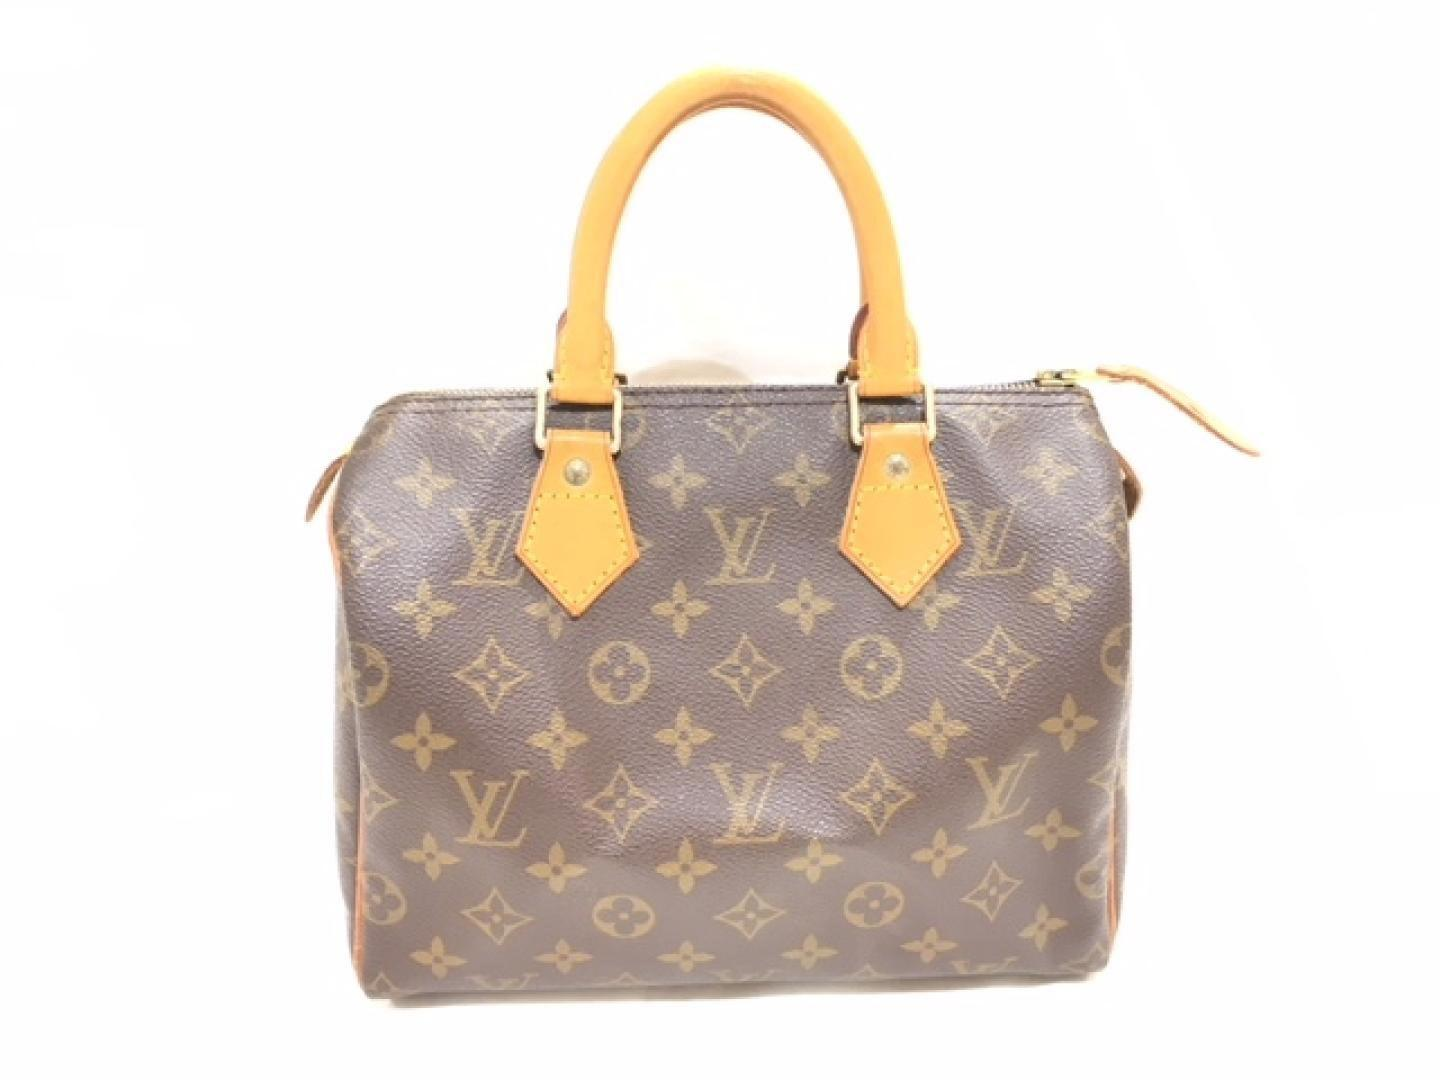 9eee16de4553 Lyst - Louis Vuitton Speedy 25 Boston Hand Bag Monogram Canvas ...